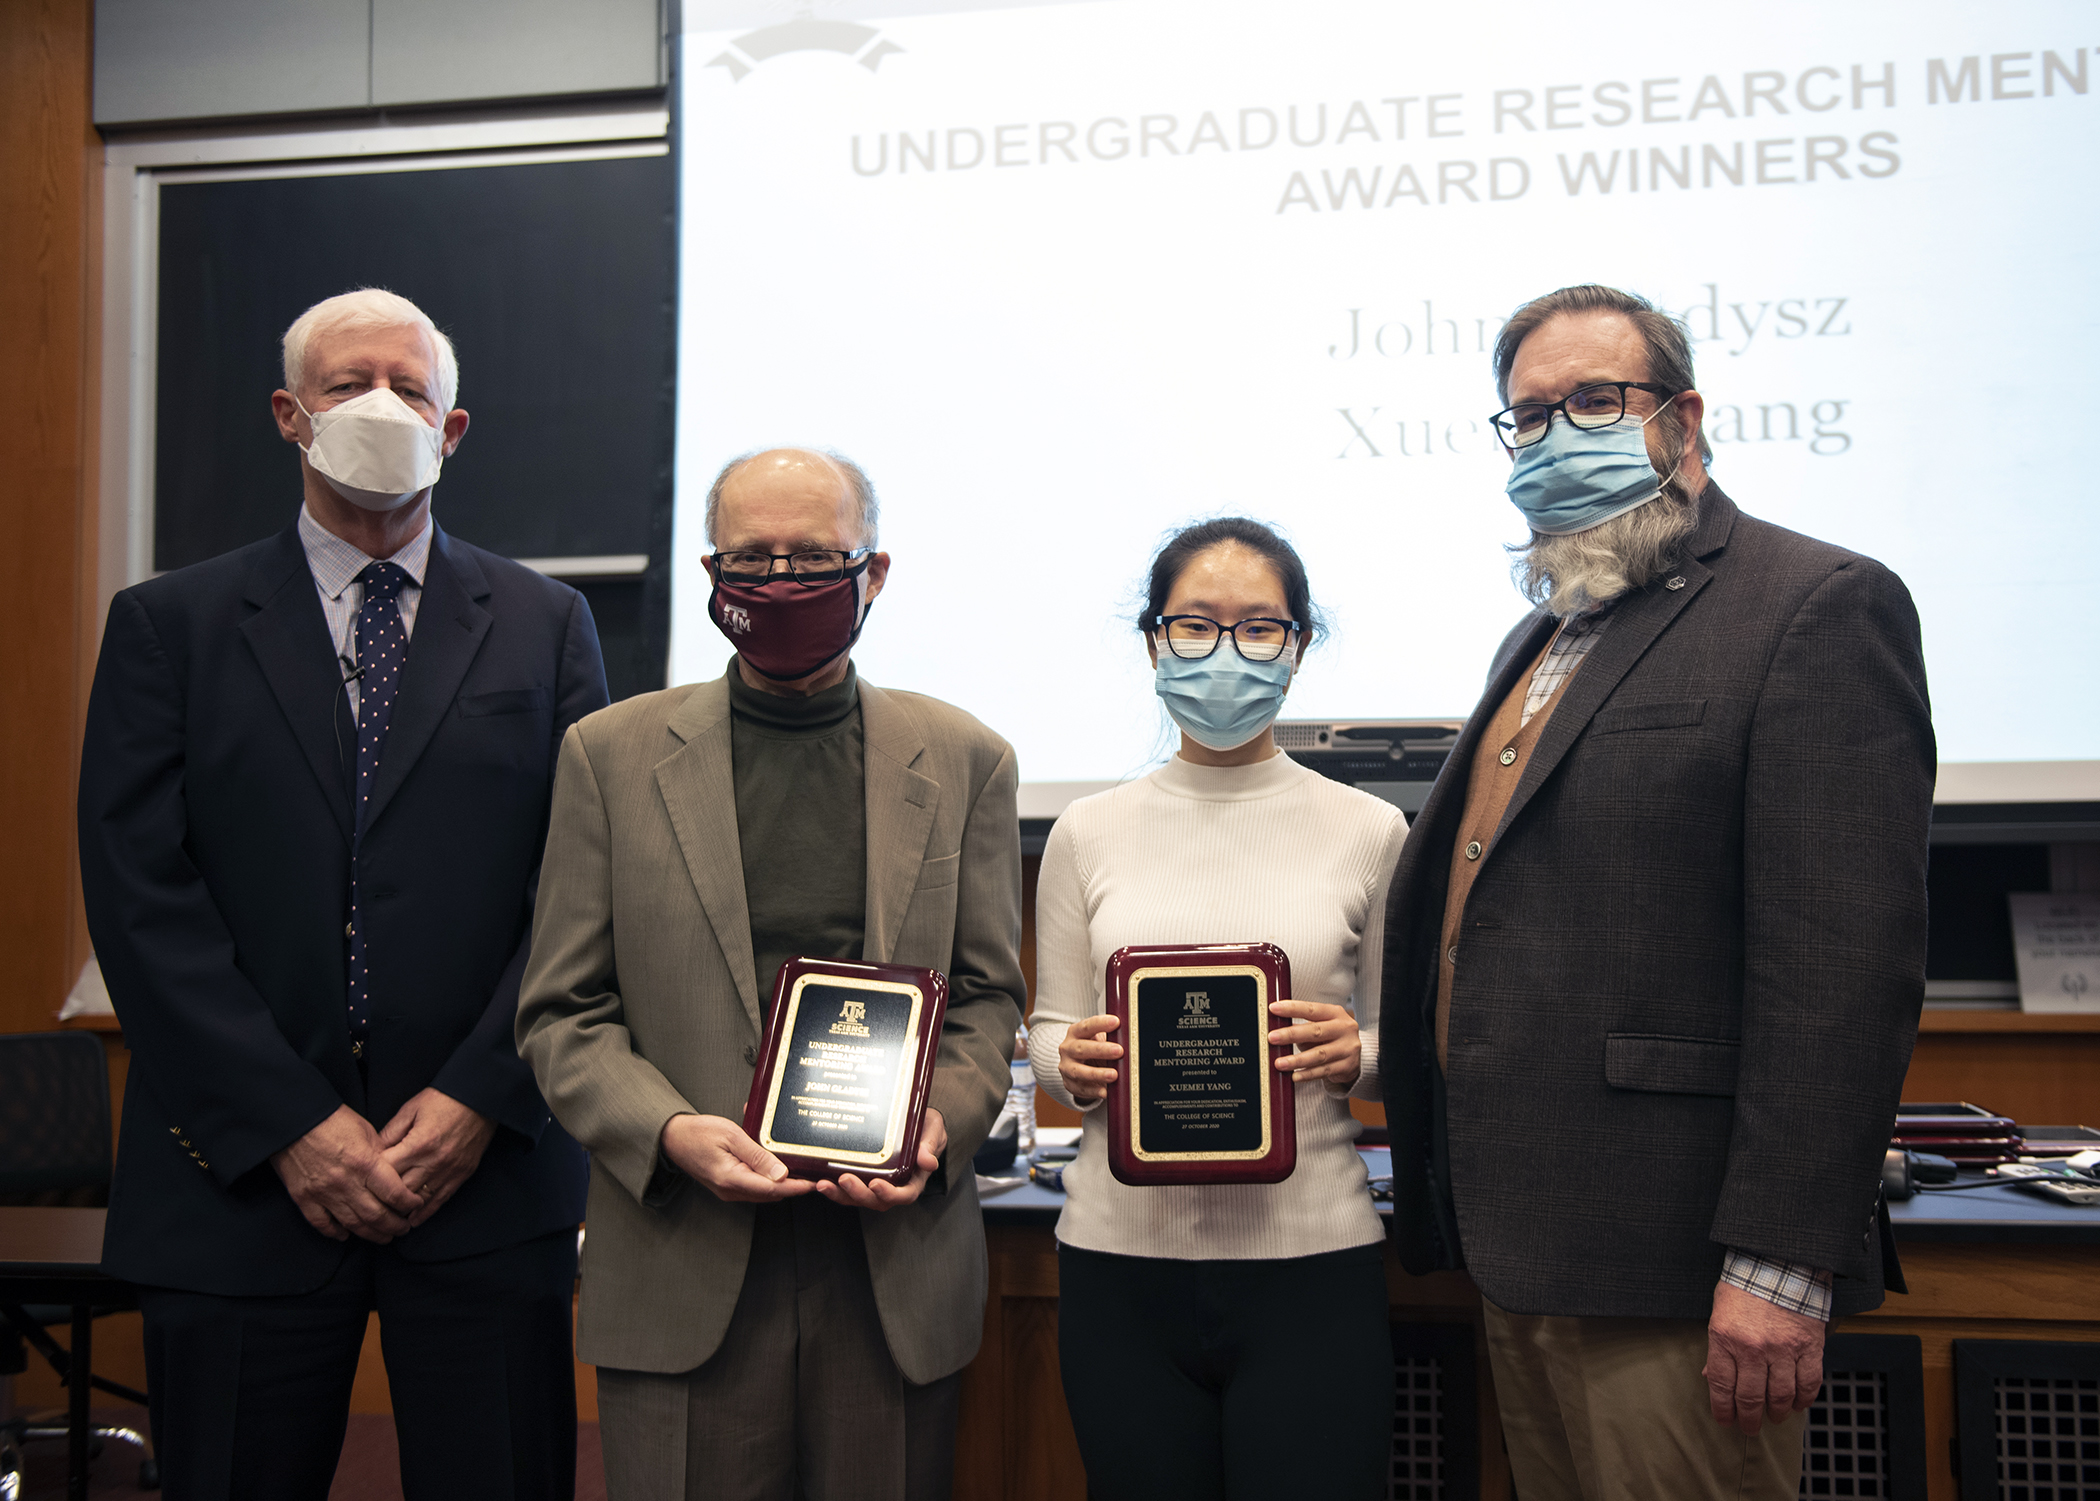 Dean of Science Valen Johnson and Associate Dean for Research Darren DePoy congratulate Texas A&M chemist John Gladysz and chemistry graduate student Xuemei Yang as recipients of the college's 2020 Undergraduate Research Mentoring Awards